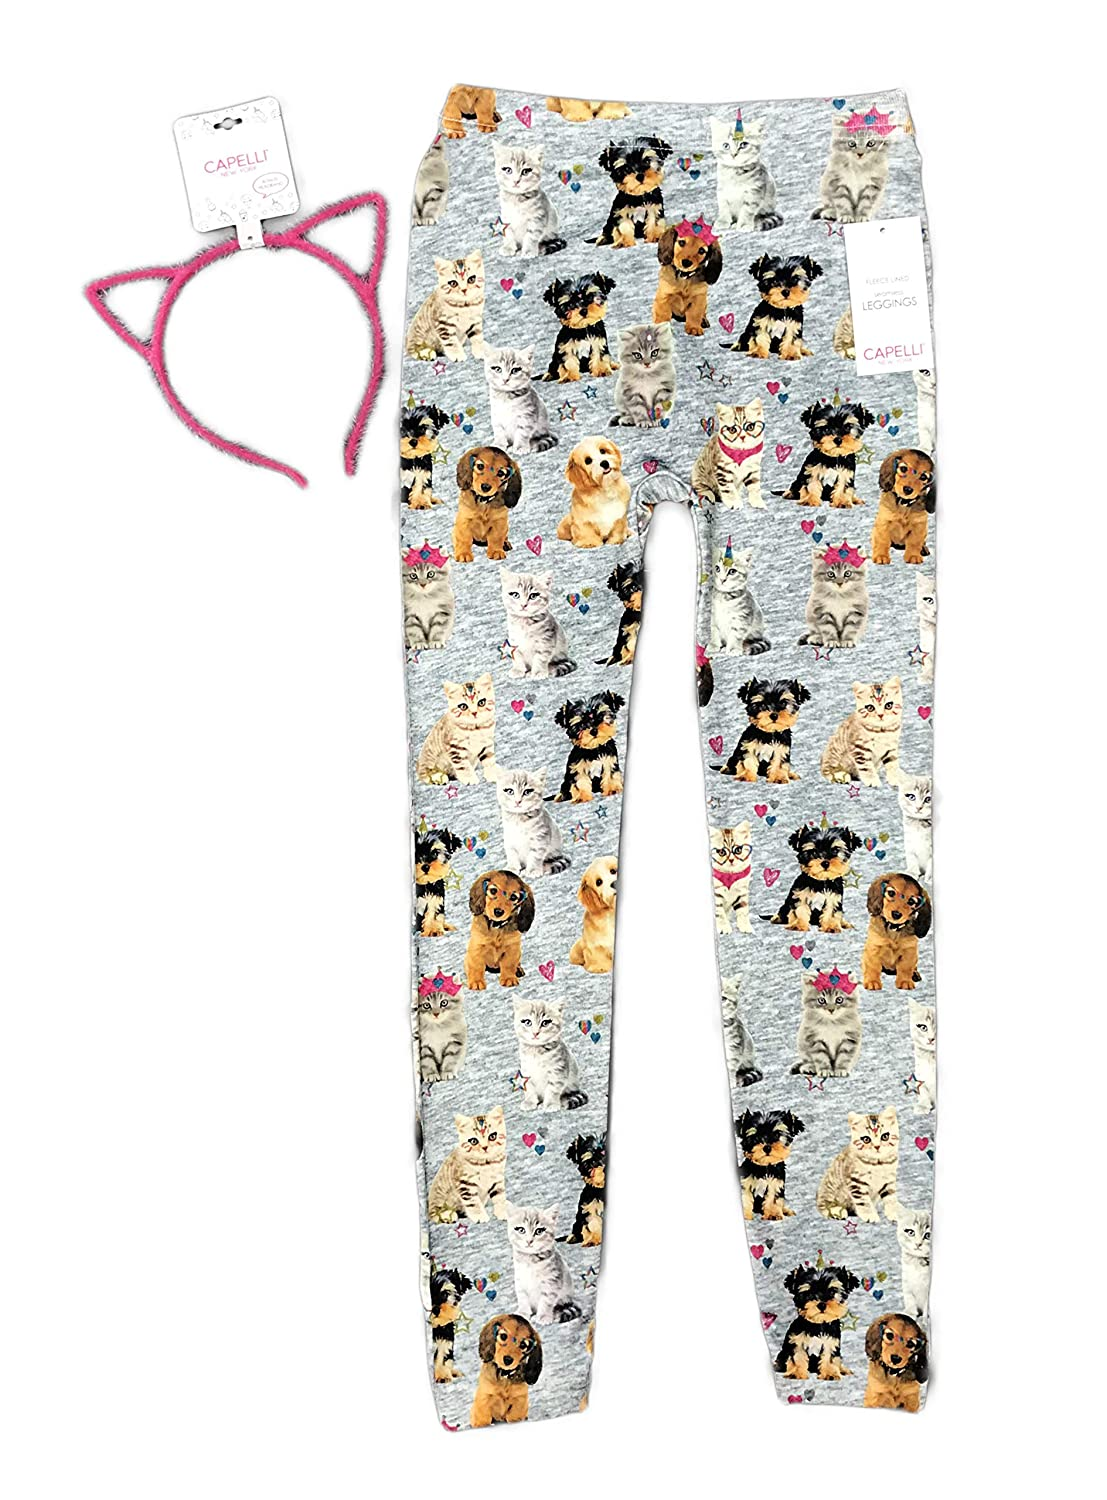 Cute Cats & Dogs Fleece Lined Seamless Girls Novelty Leggings with Fuzzy Pink Cat Ear Headband